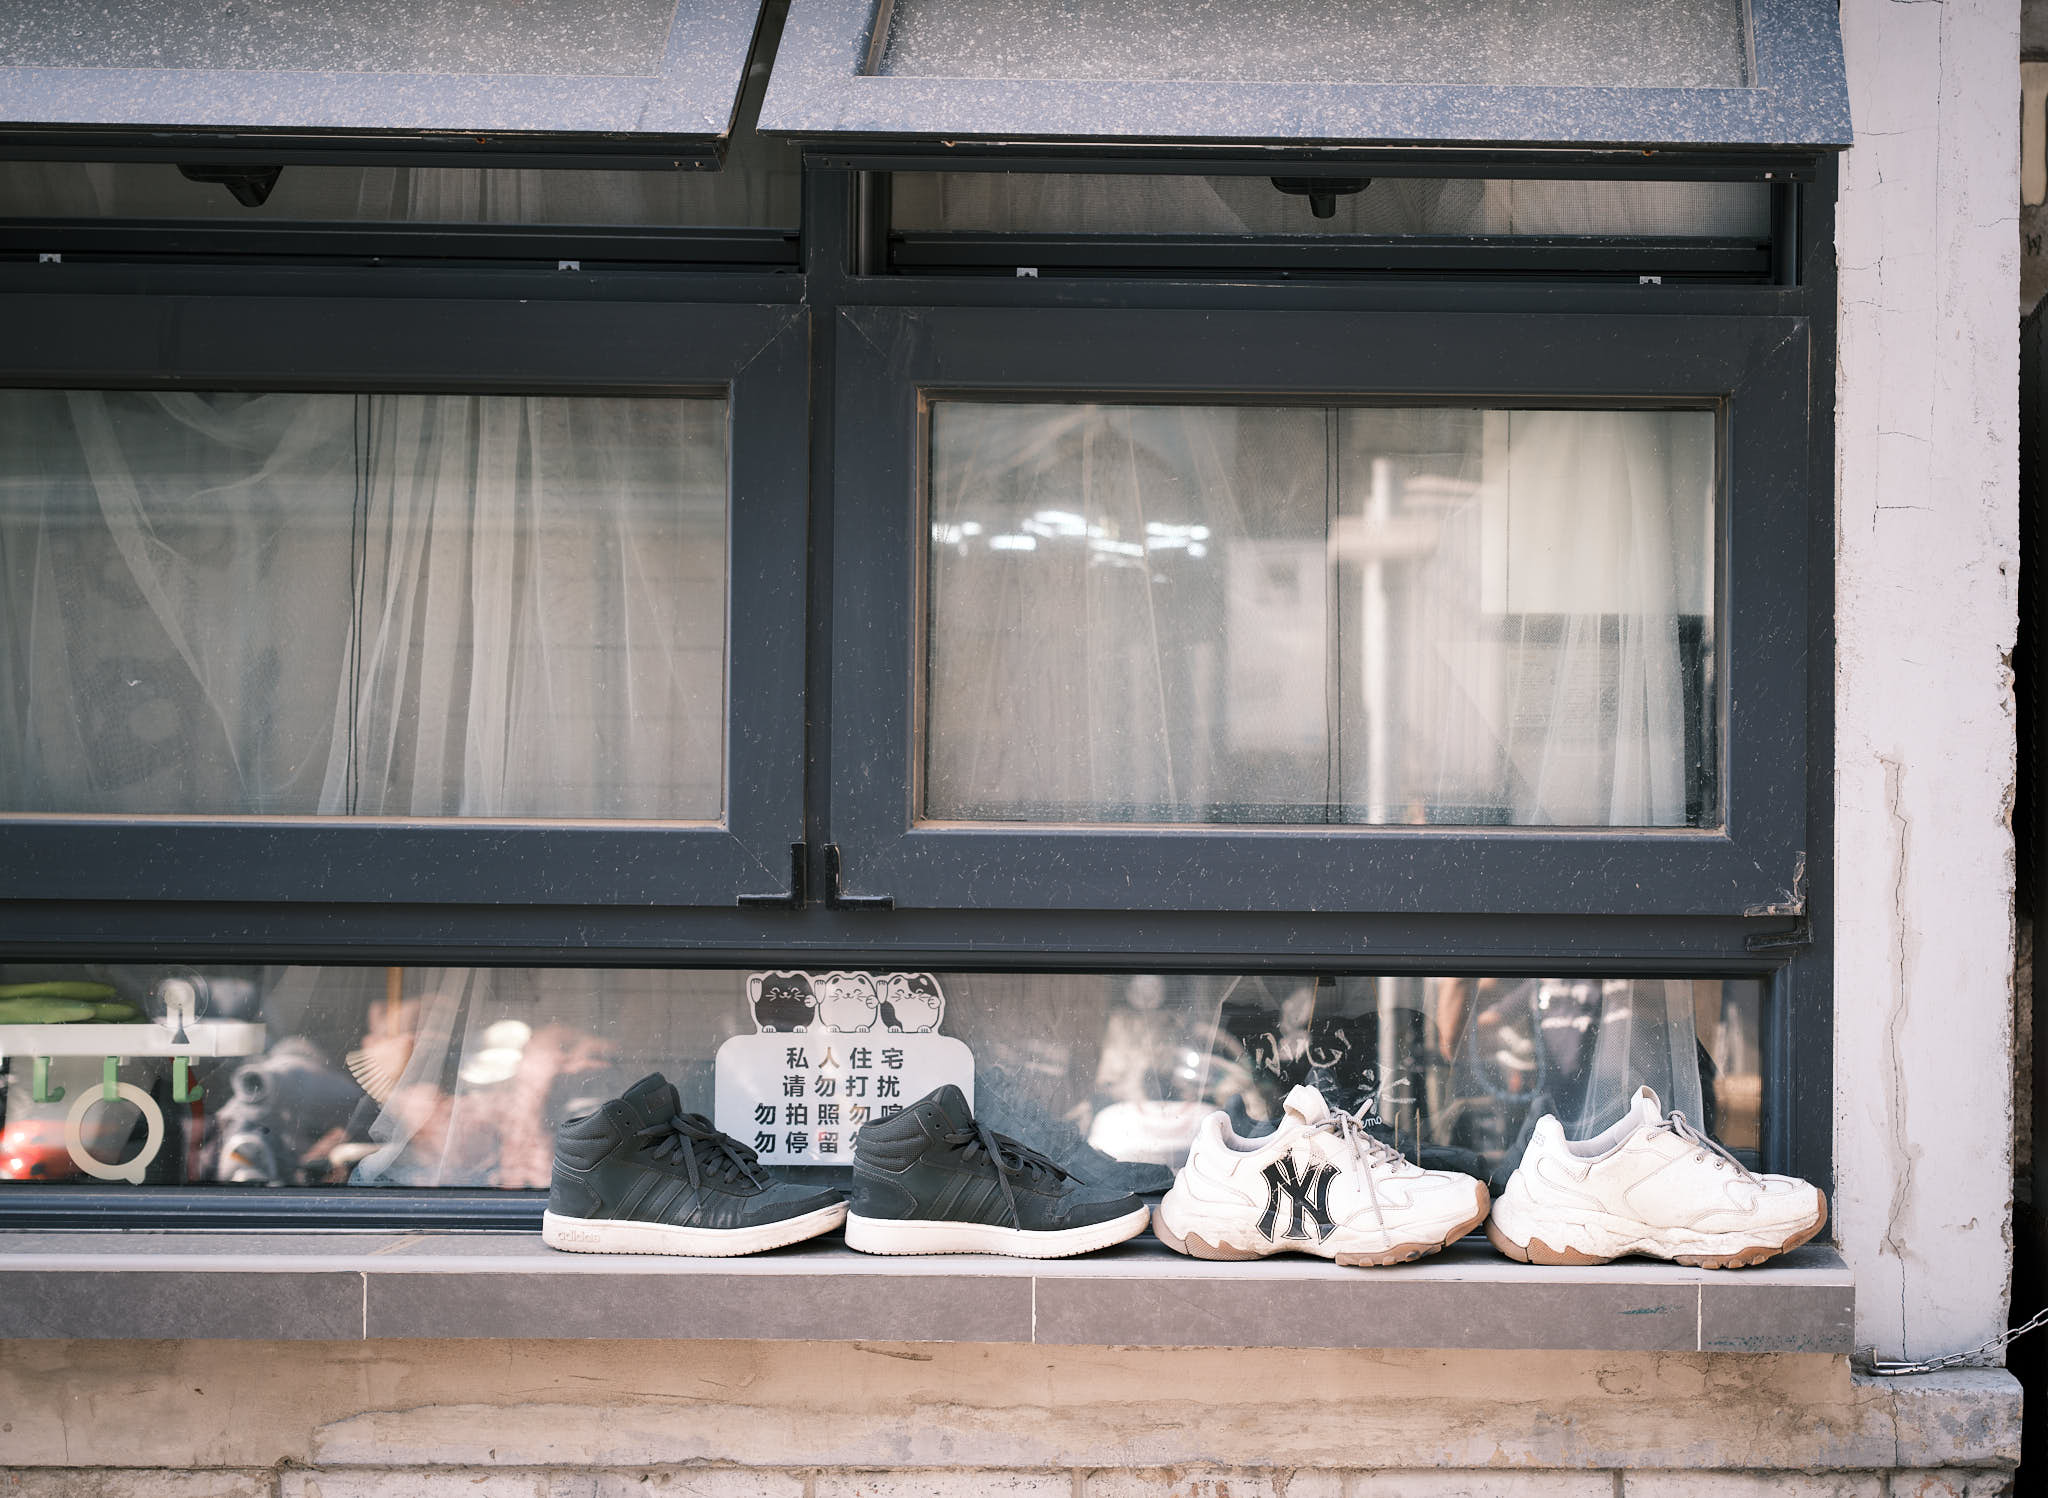 Sneakers out to dry in Qianmen